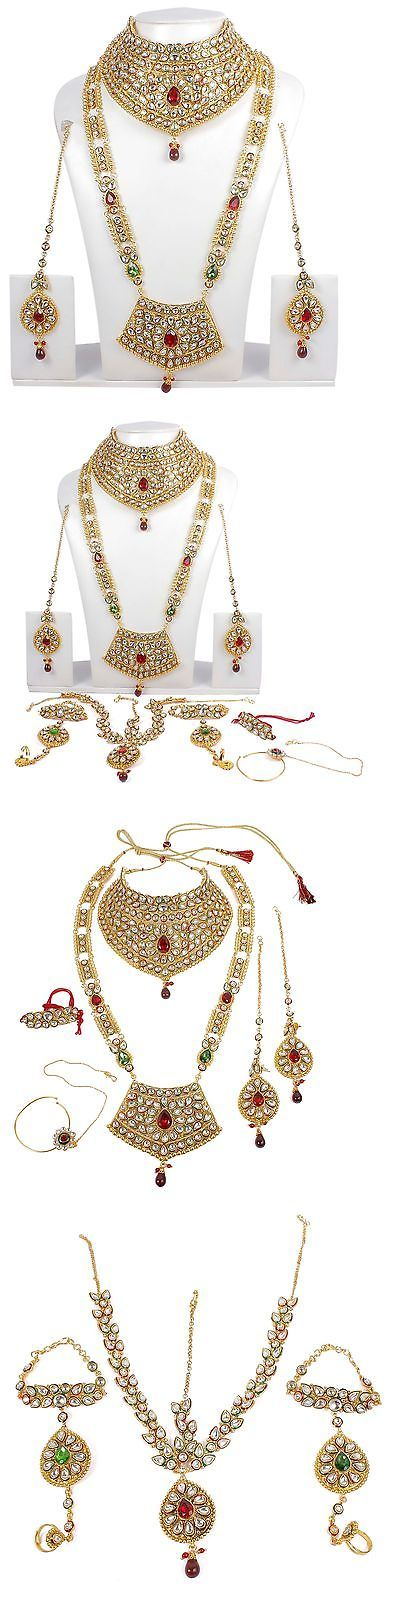 Sets 98513: Indian Bridal Jewelry Set Bollywood Necklace Fashion Jewelry Kundan Jewelry 376 BUY IT NOW ONLY: $78.0